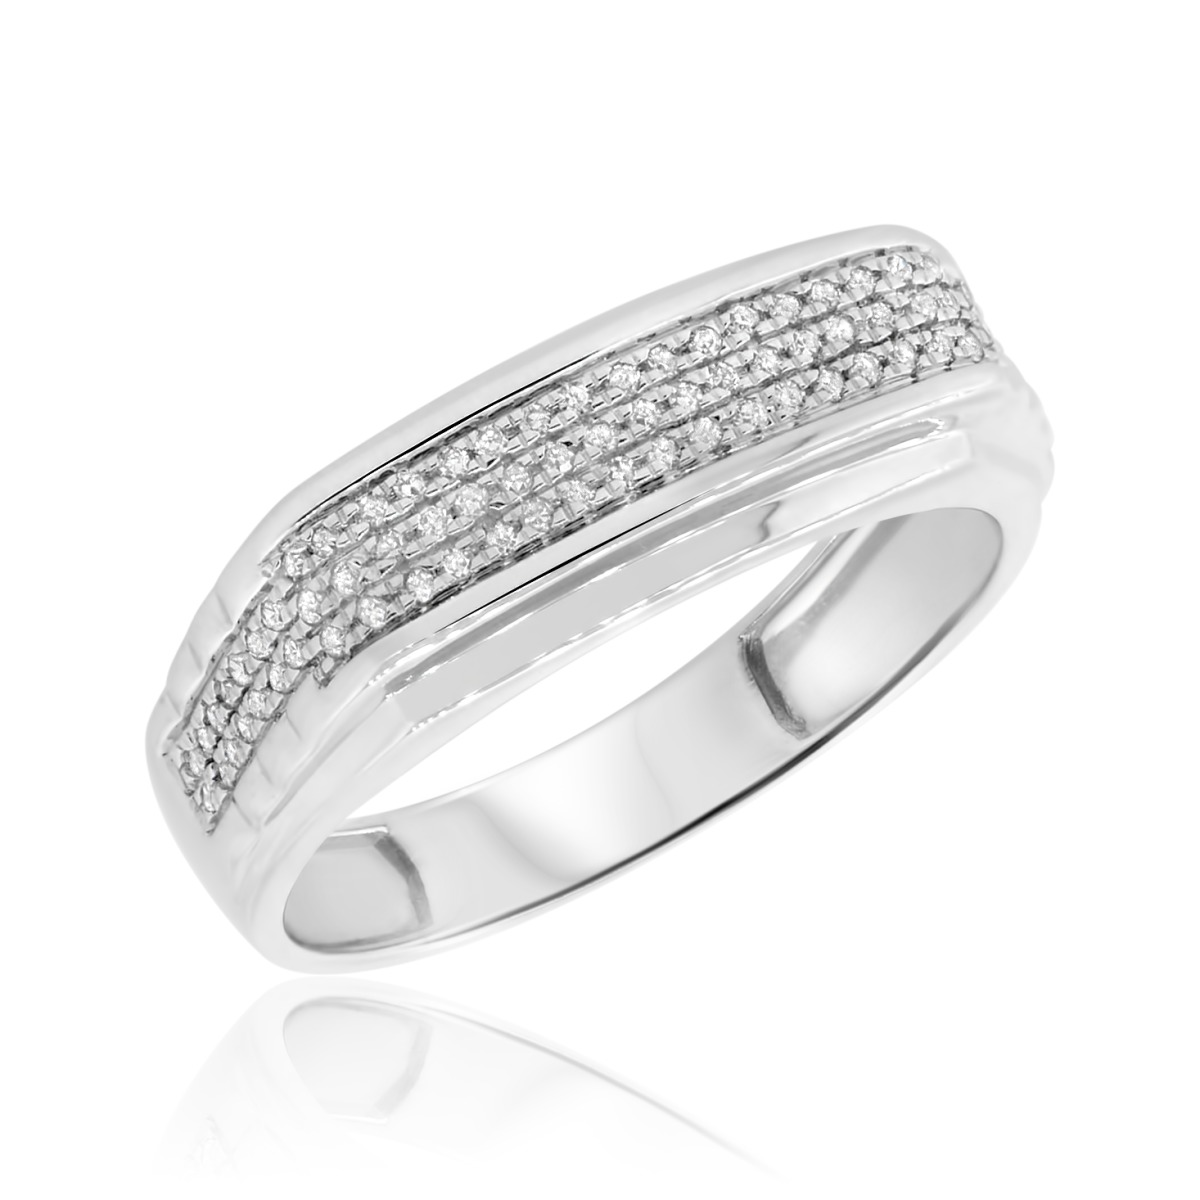 1/6 Carat T.W. Diamond Ladies Wedding Band  10K White Gold